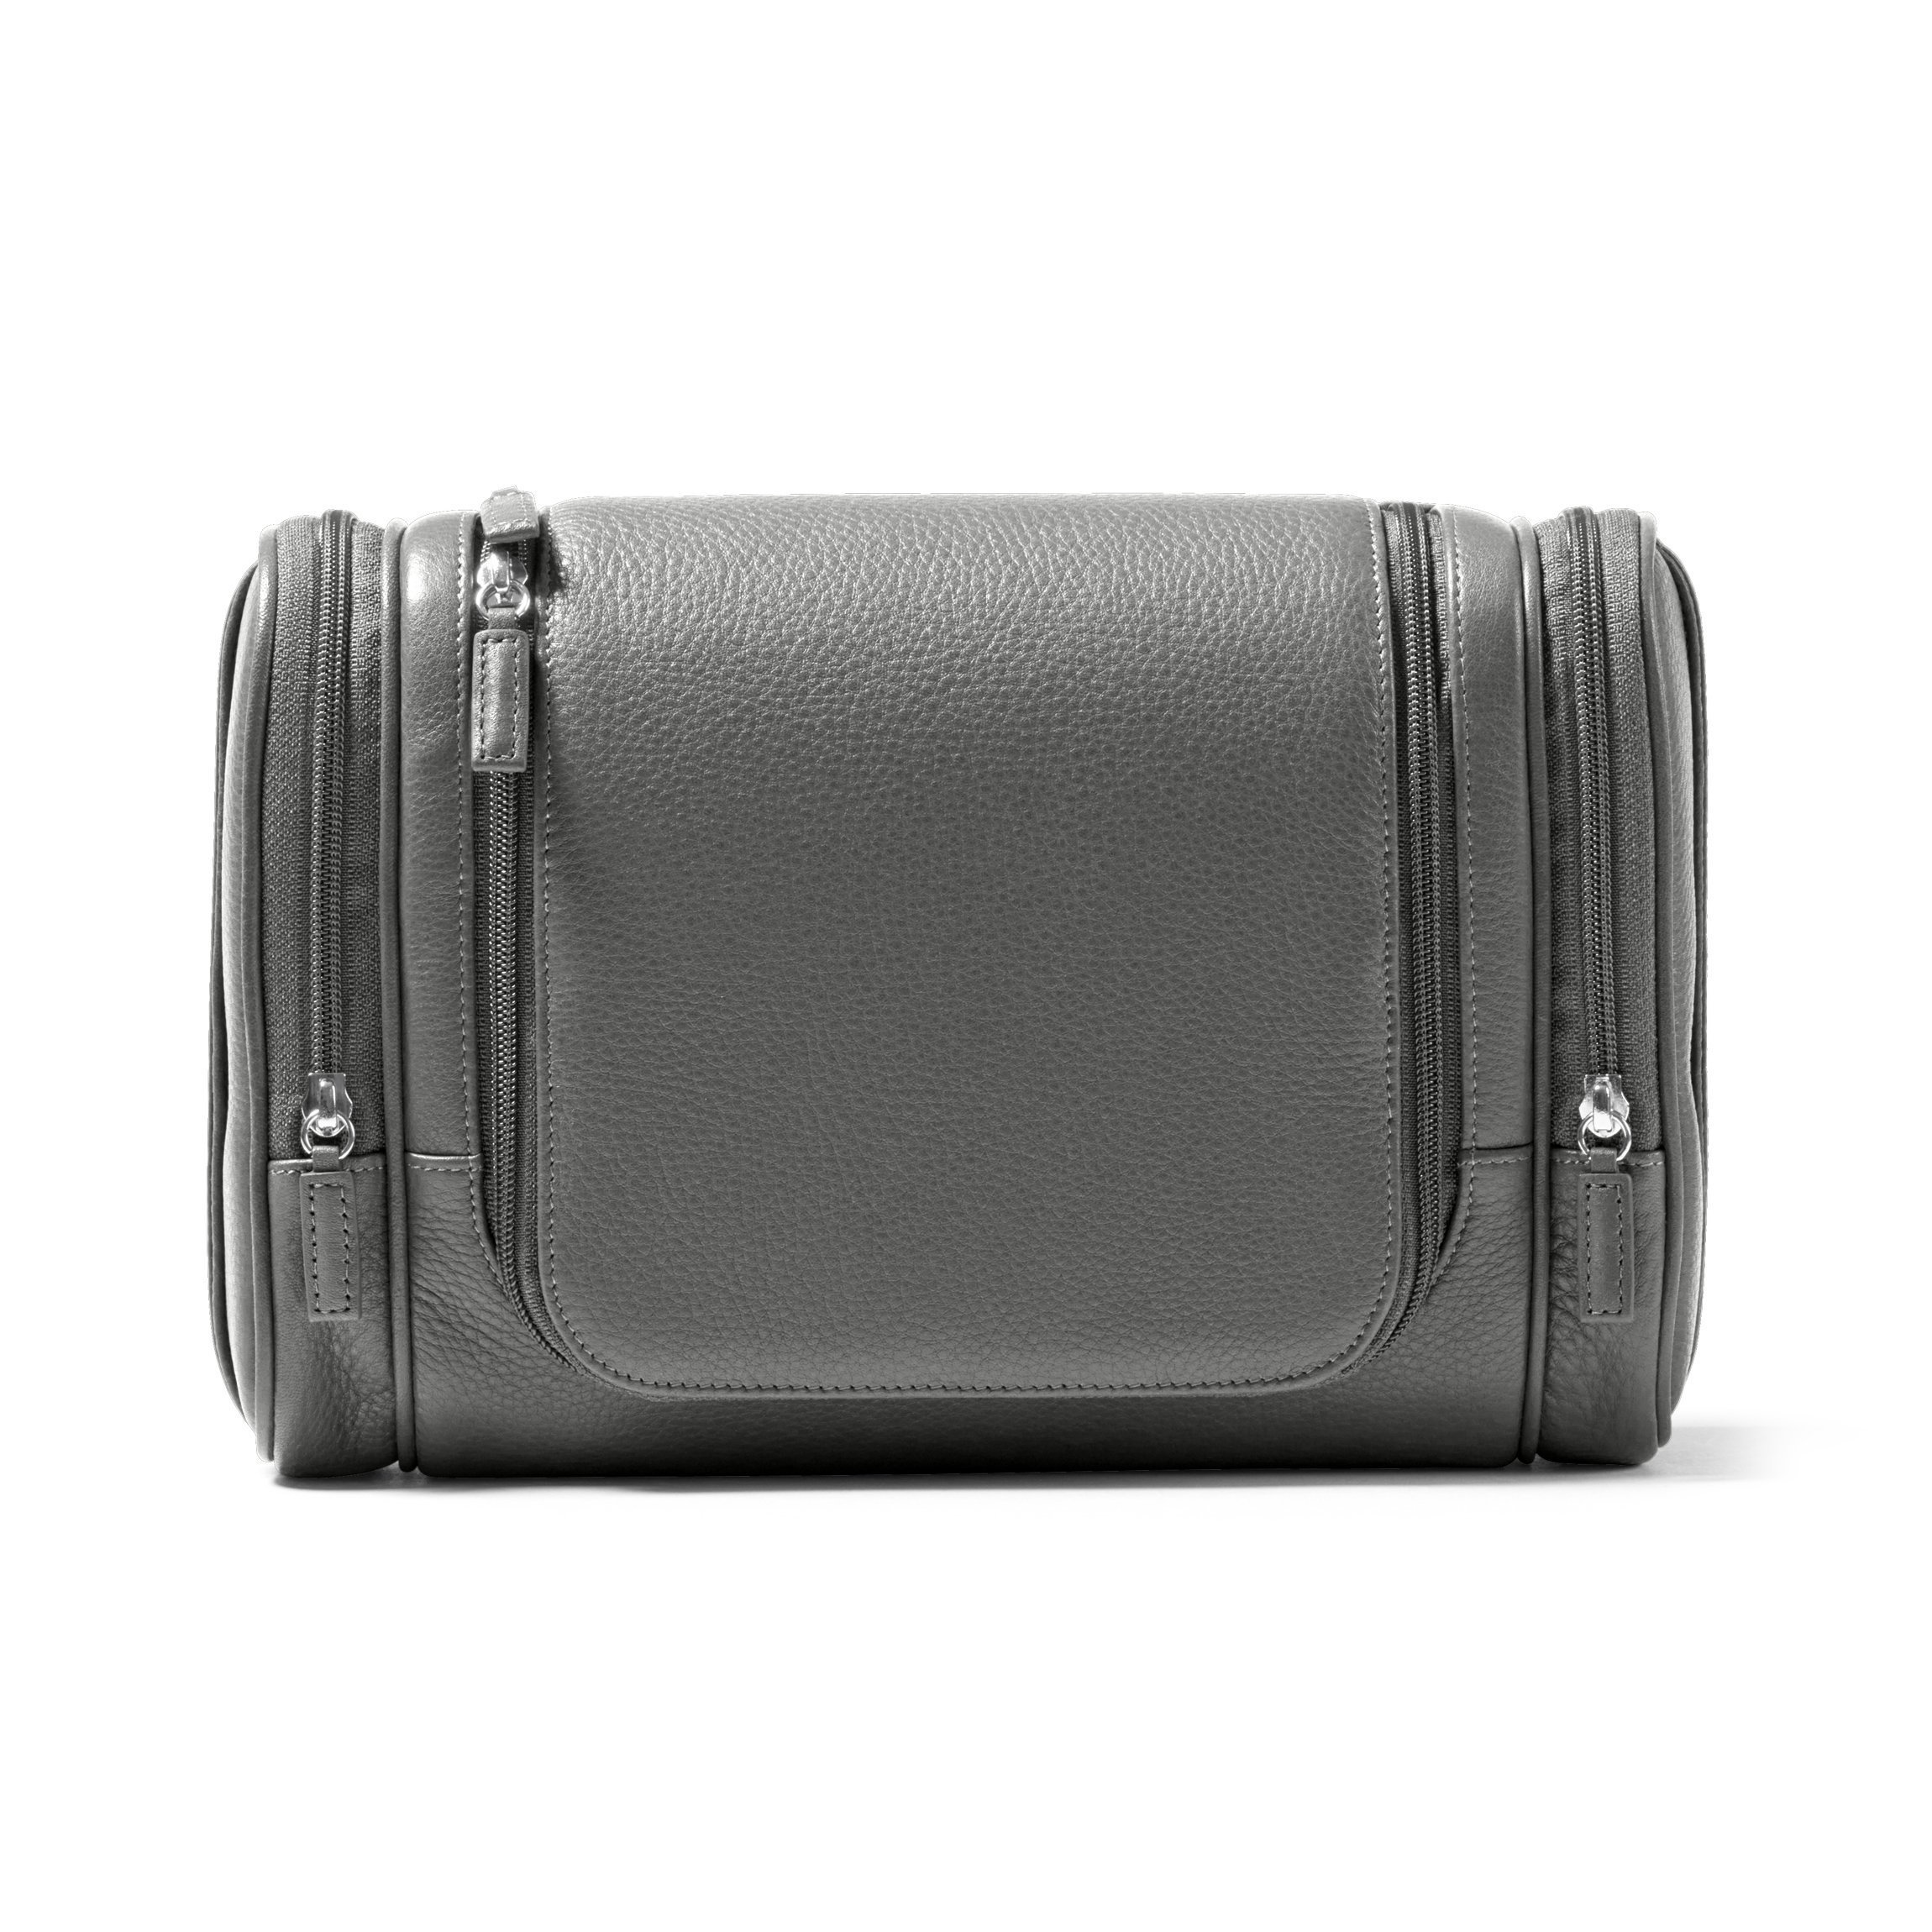 Leatherology Multi Pocket Hanging Toiletry - Full Grain Leather - Charcoal (gray)